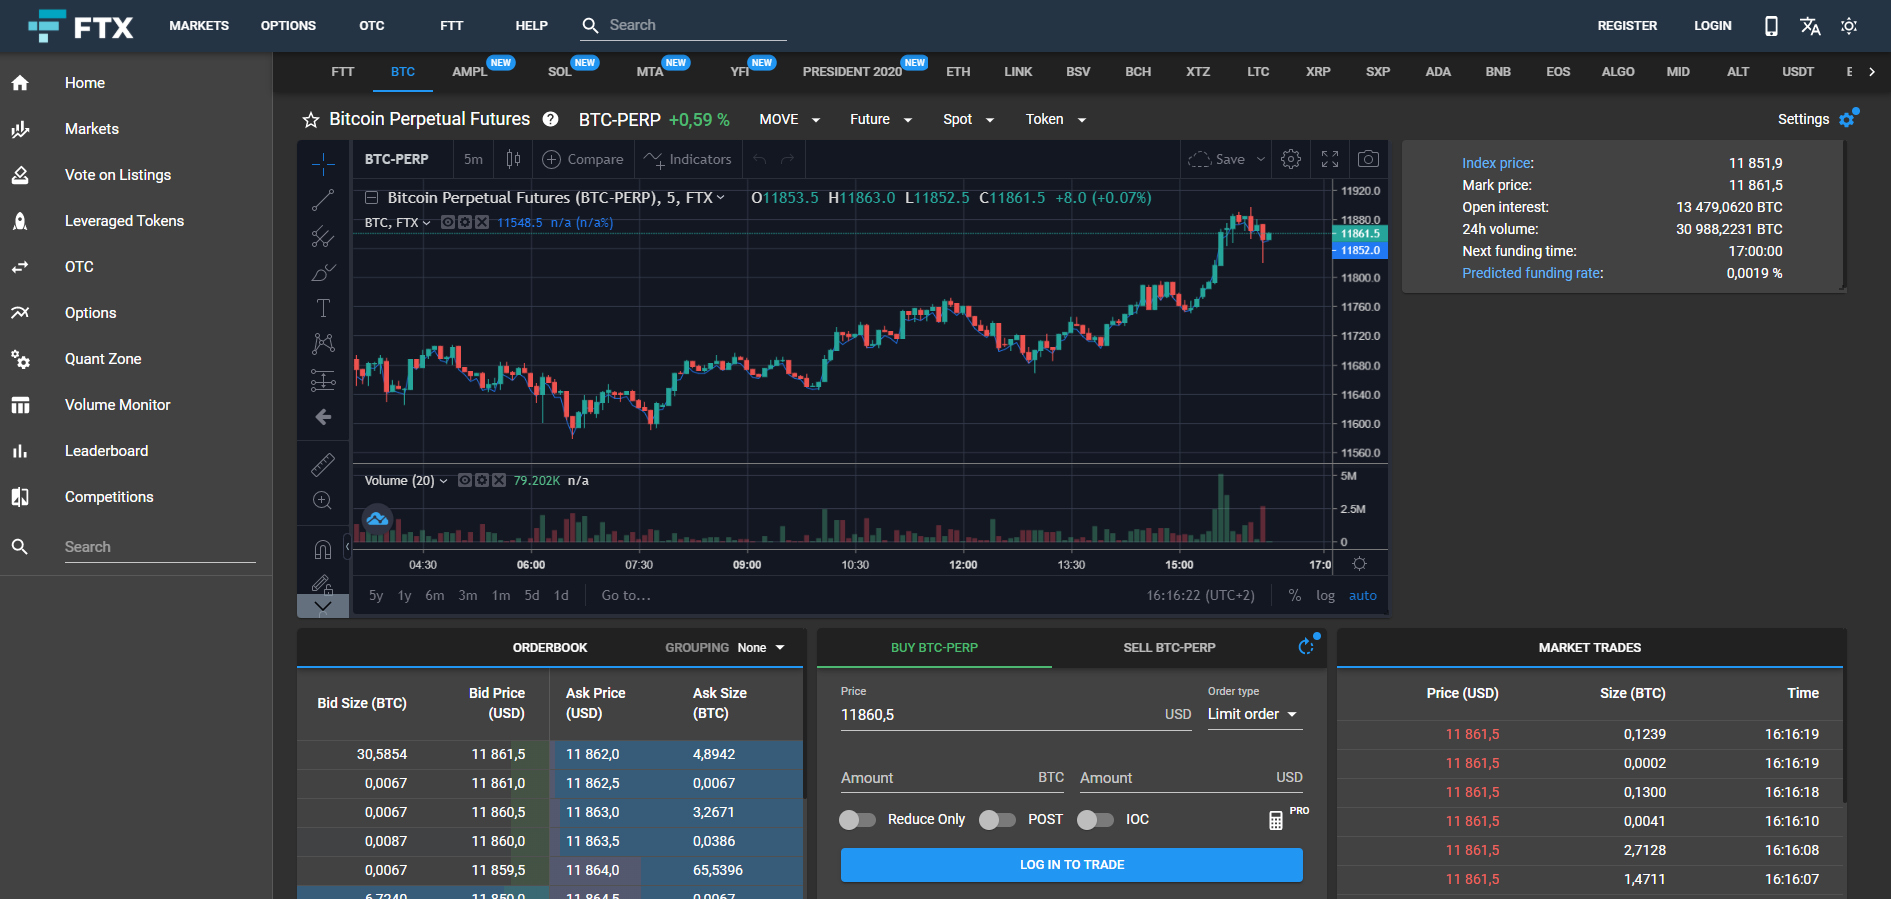 FTX Trading View